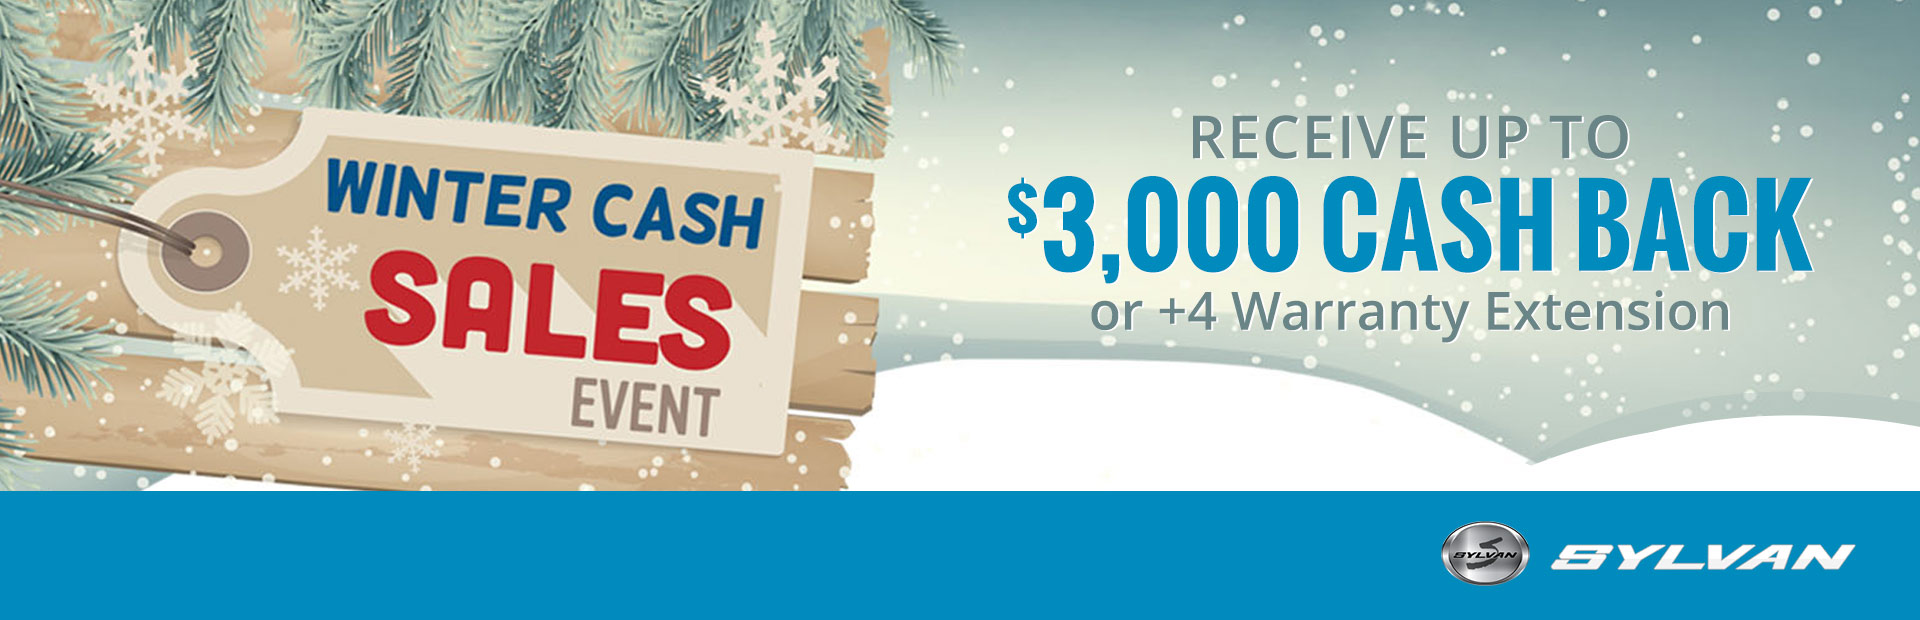 Sylvan: Winter Cash Sales Event